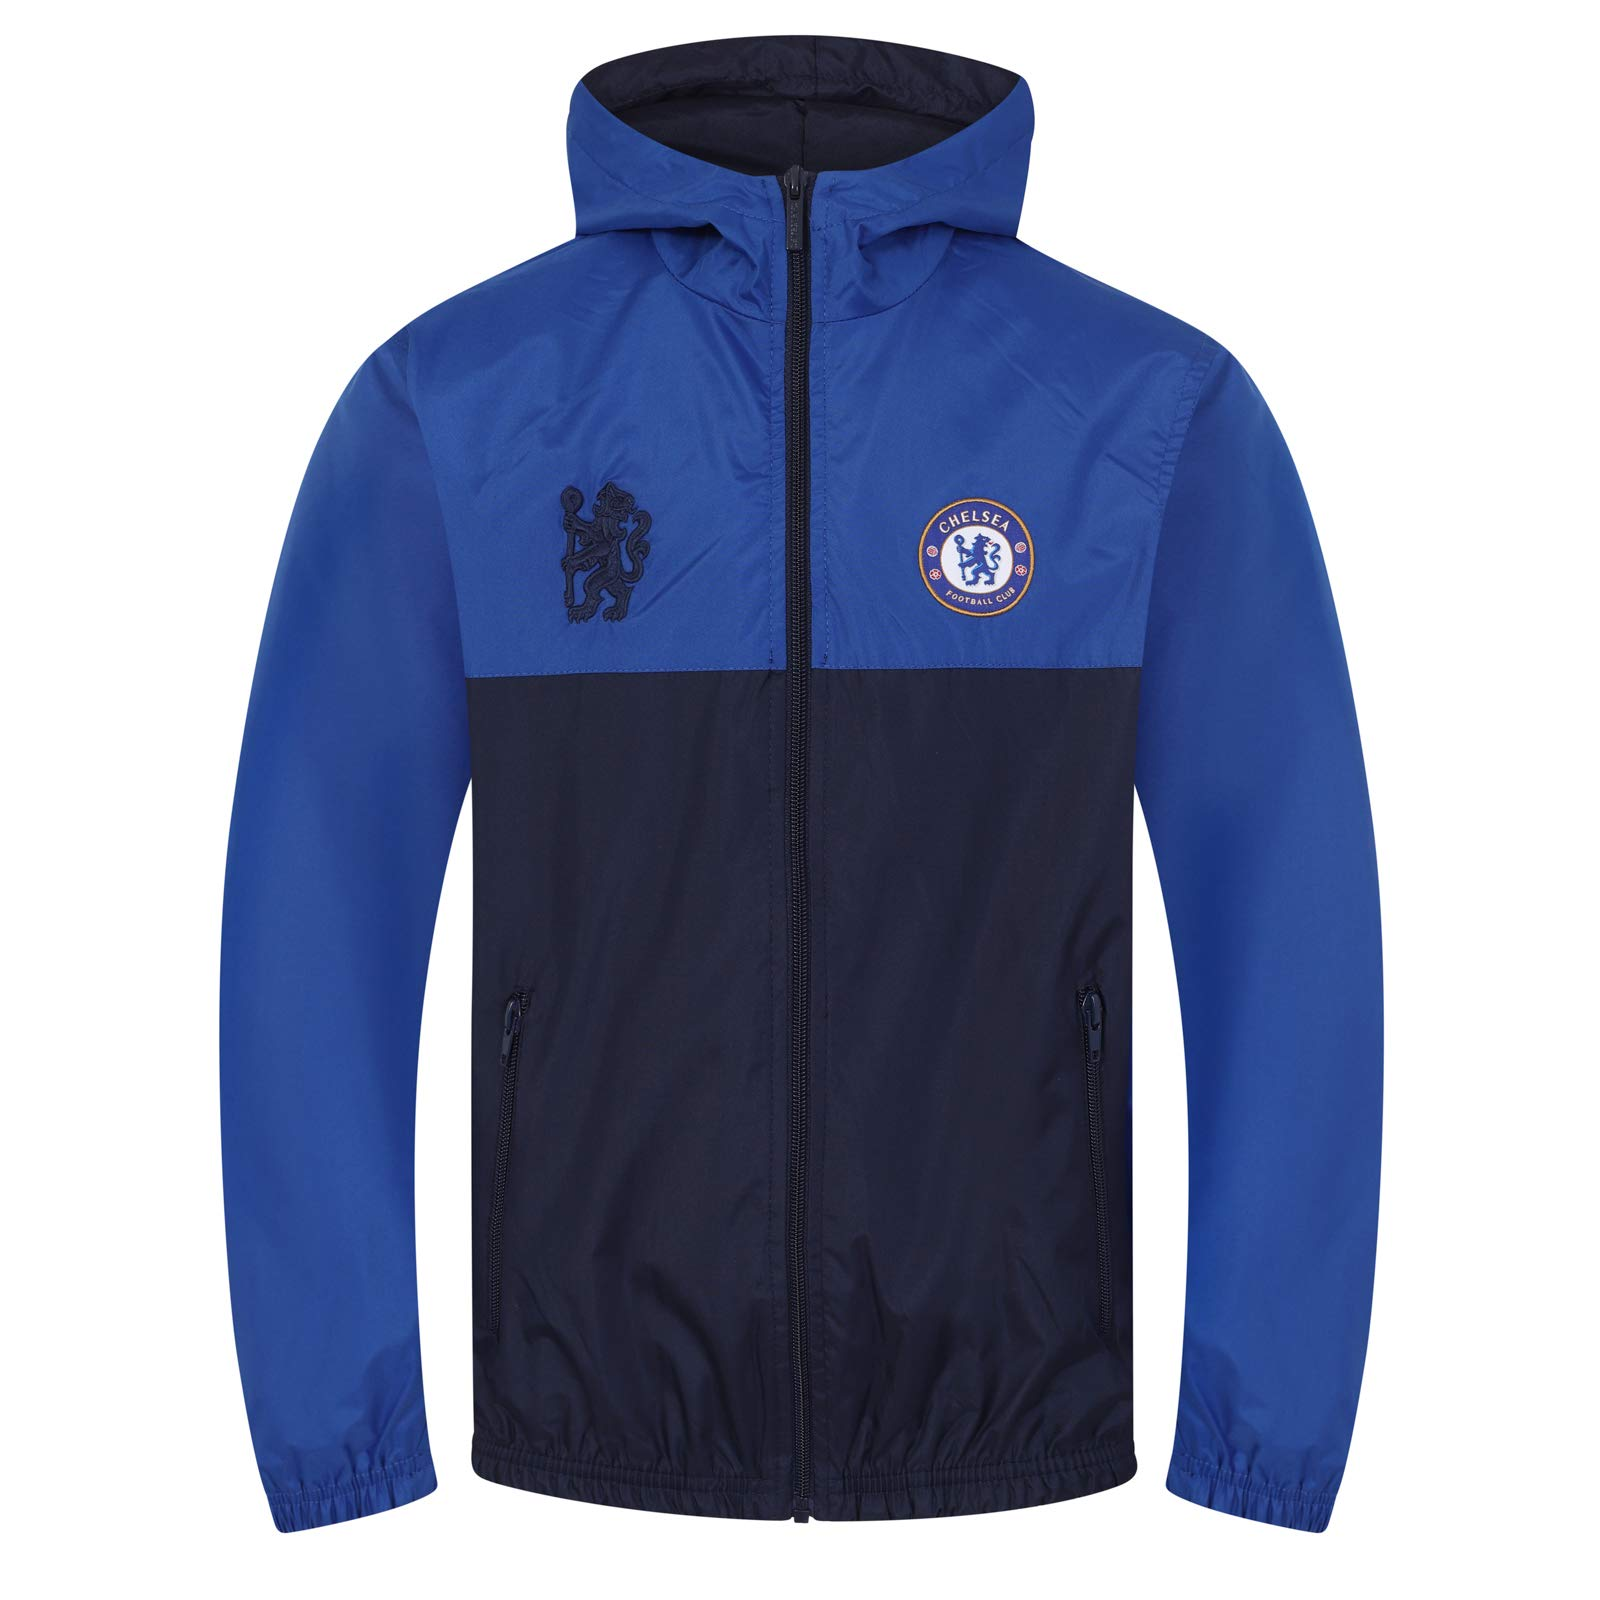 Chelsea FC Official Football Gift Boys Shower Jacket Windbreaker 2-3 Years Royal Blue by Chelsea F.C.